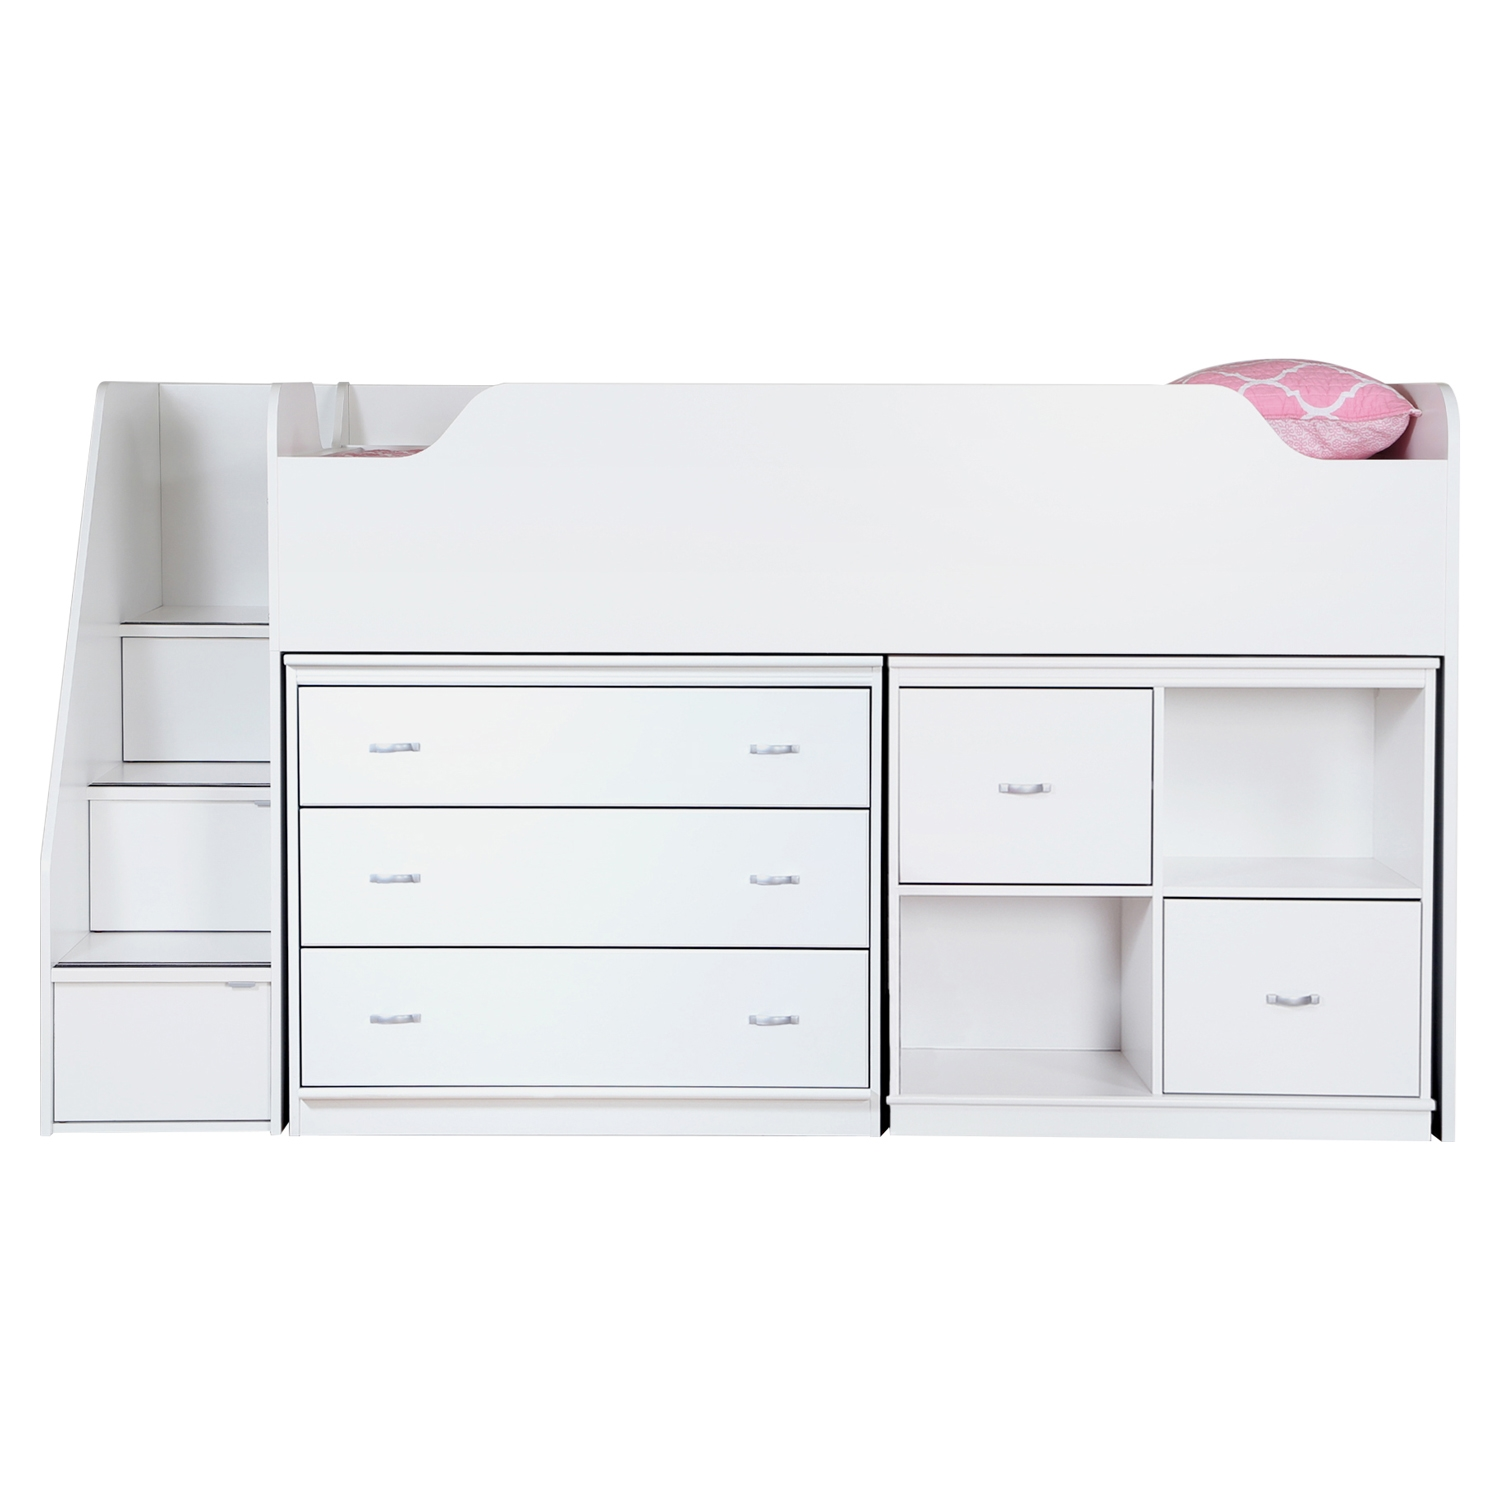 Mobby Twin Loft Bed with Stairs- Chest, Storage Unit, Pure White - SS-3880B3